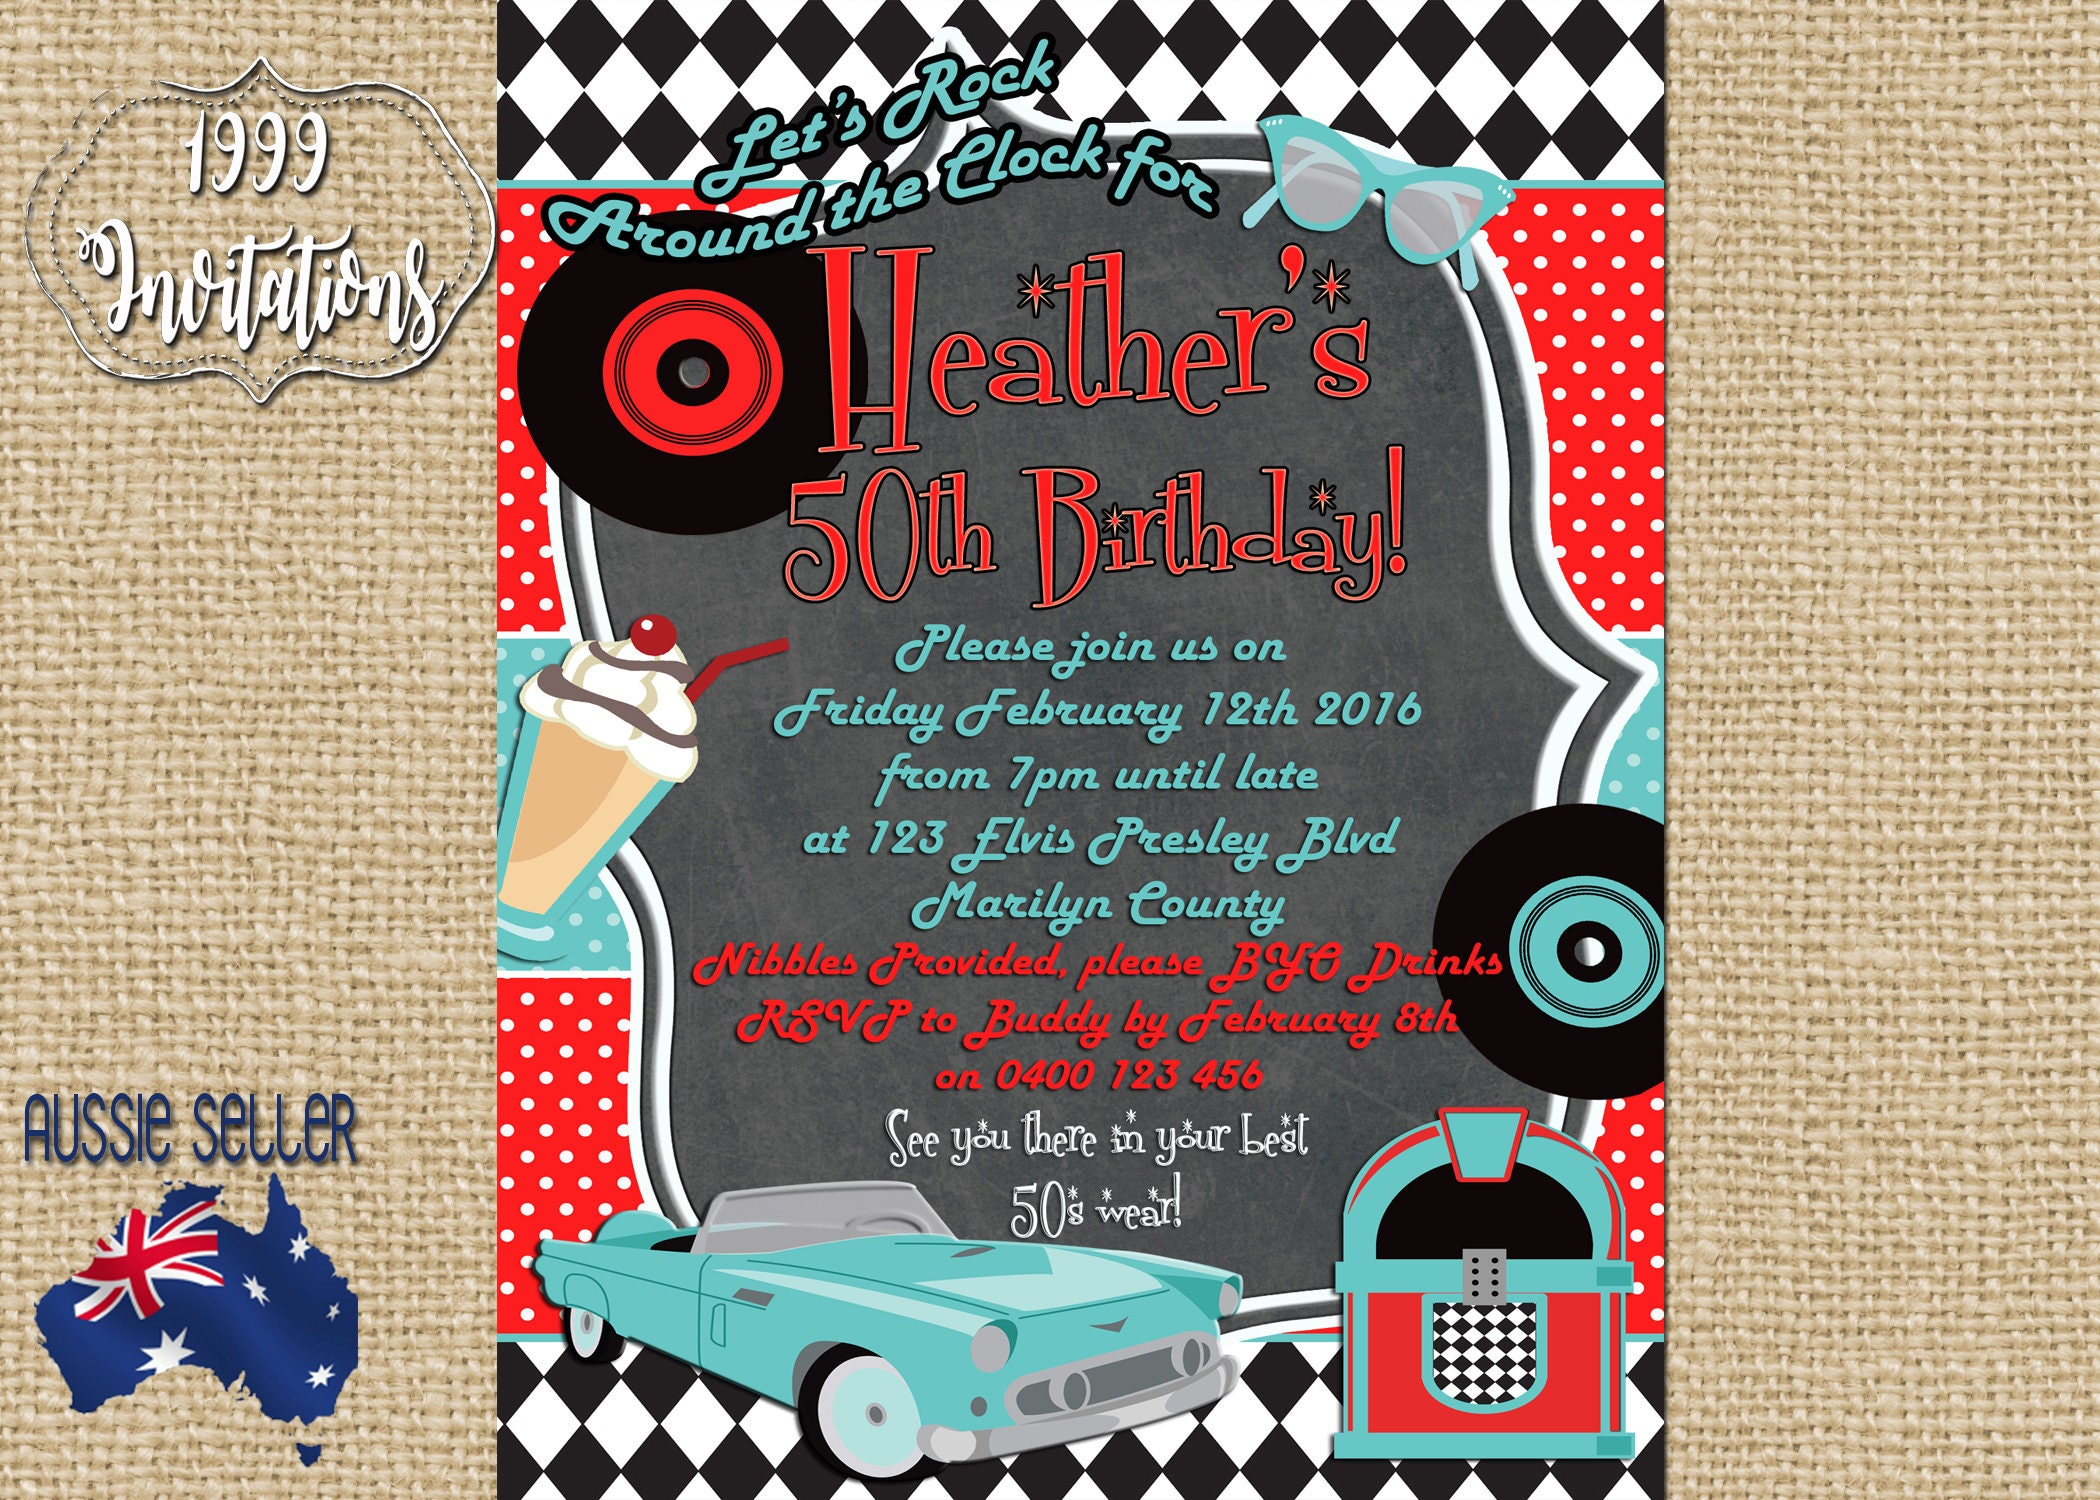 Printable Rock and Roll Invitation Rockabilly Party Rock | Etsy